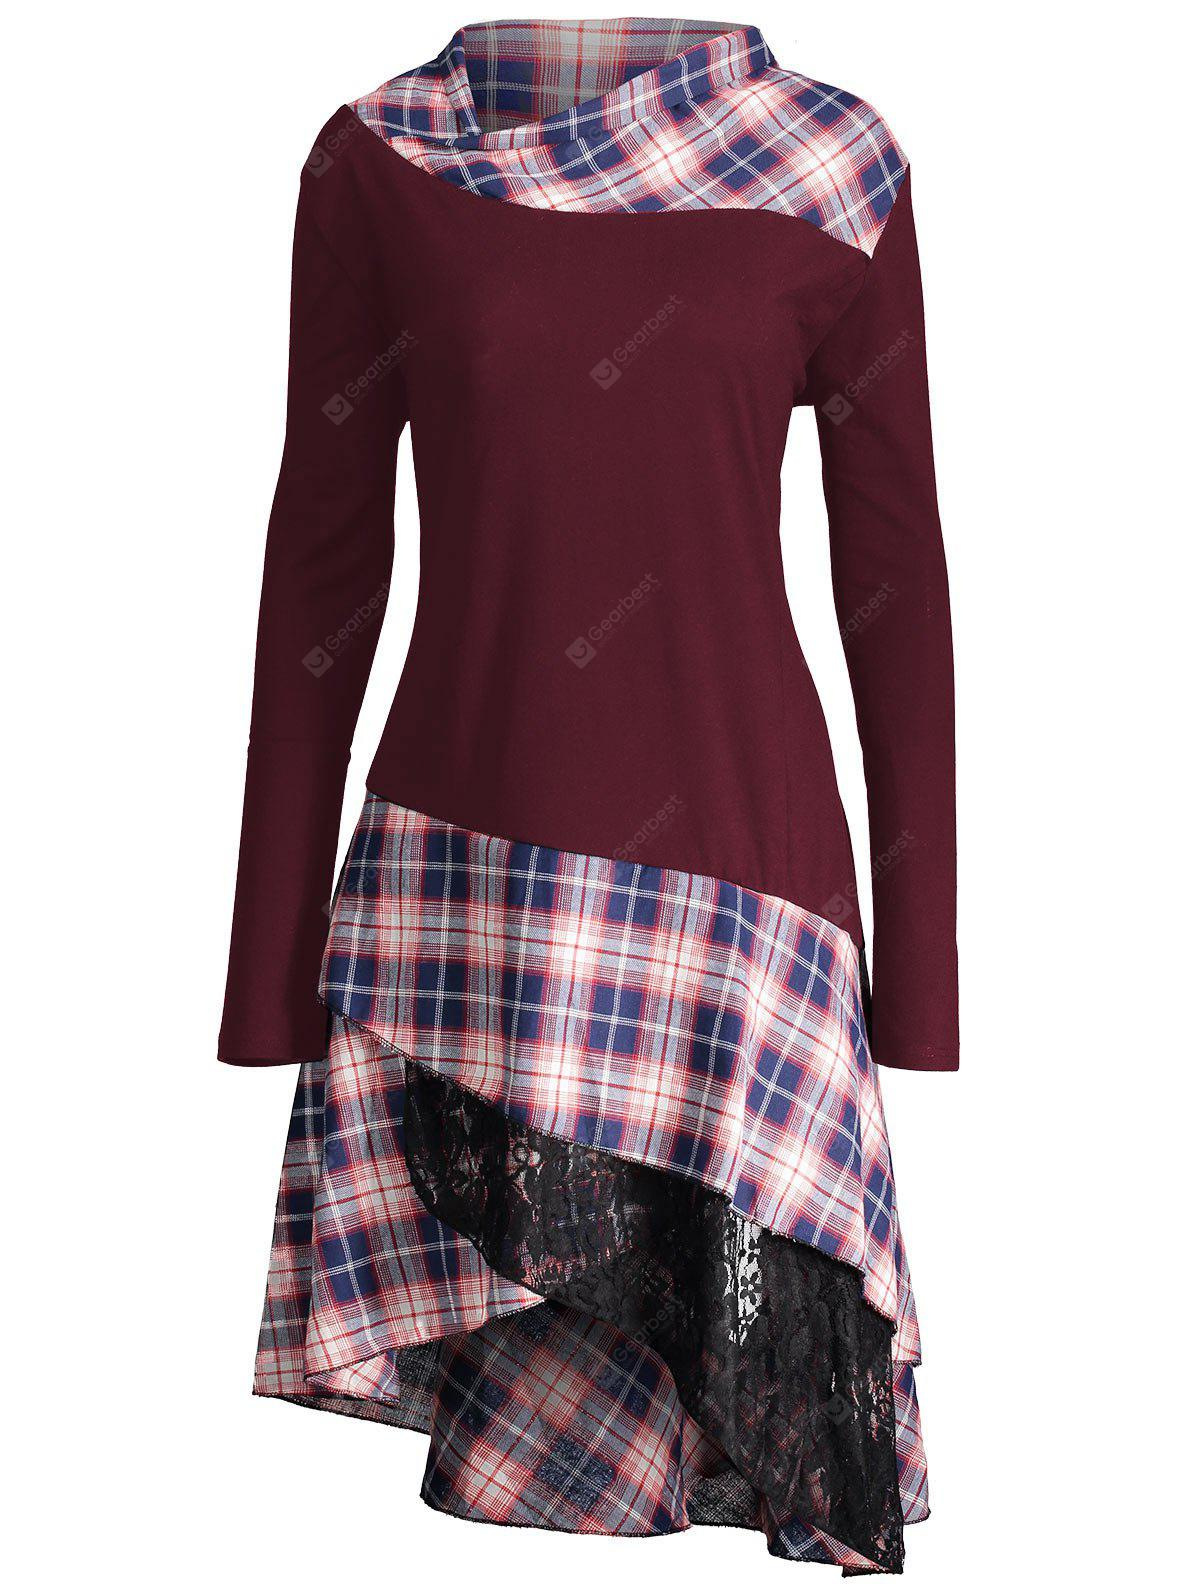 WINE RED 4XL Lace Plaid Panel Plus Size Long Top